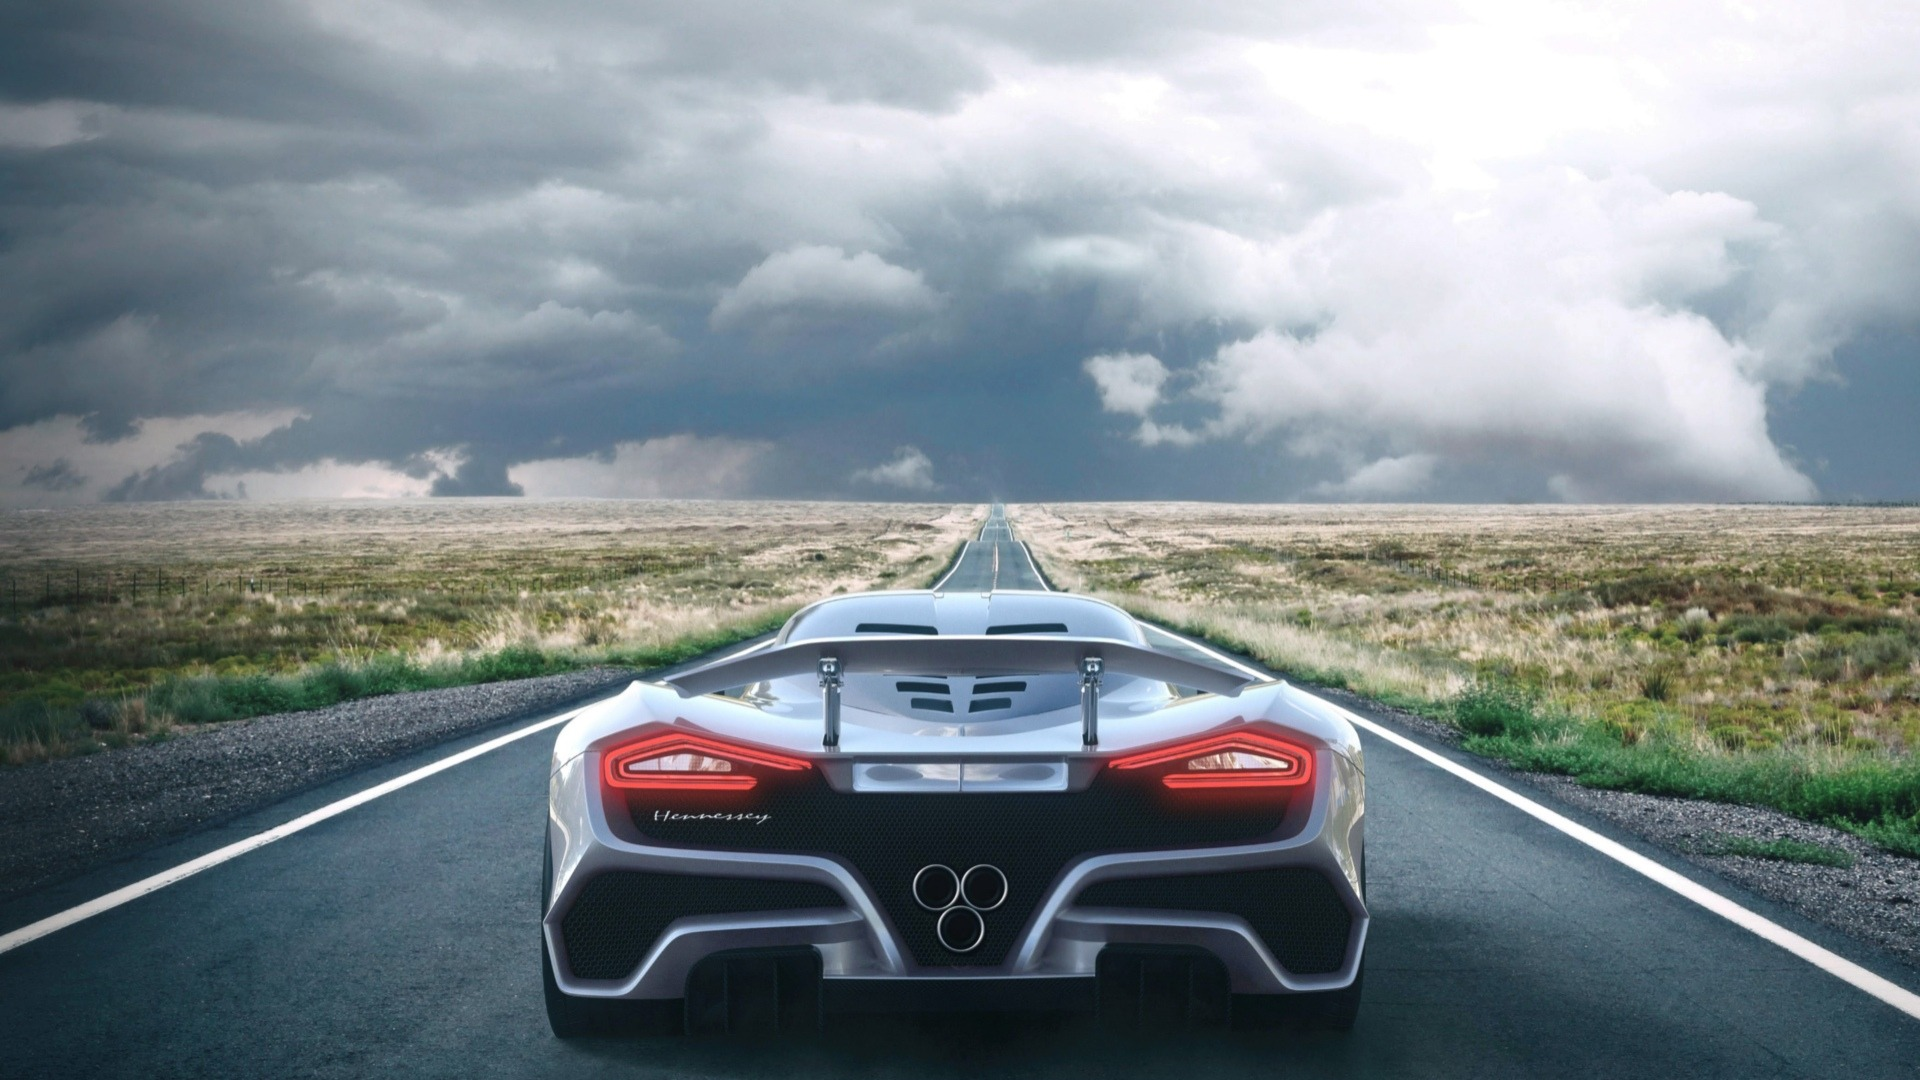 Hennessey Venom F5 Wallpapers